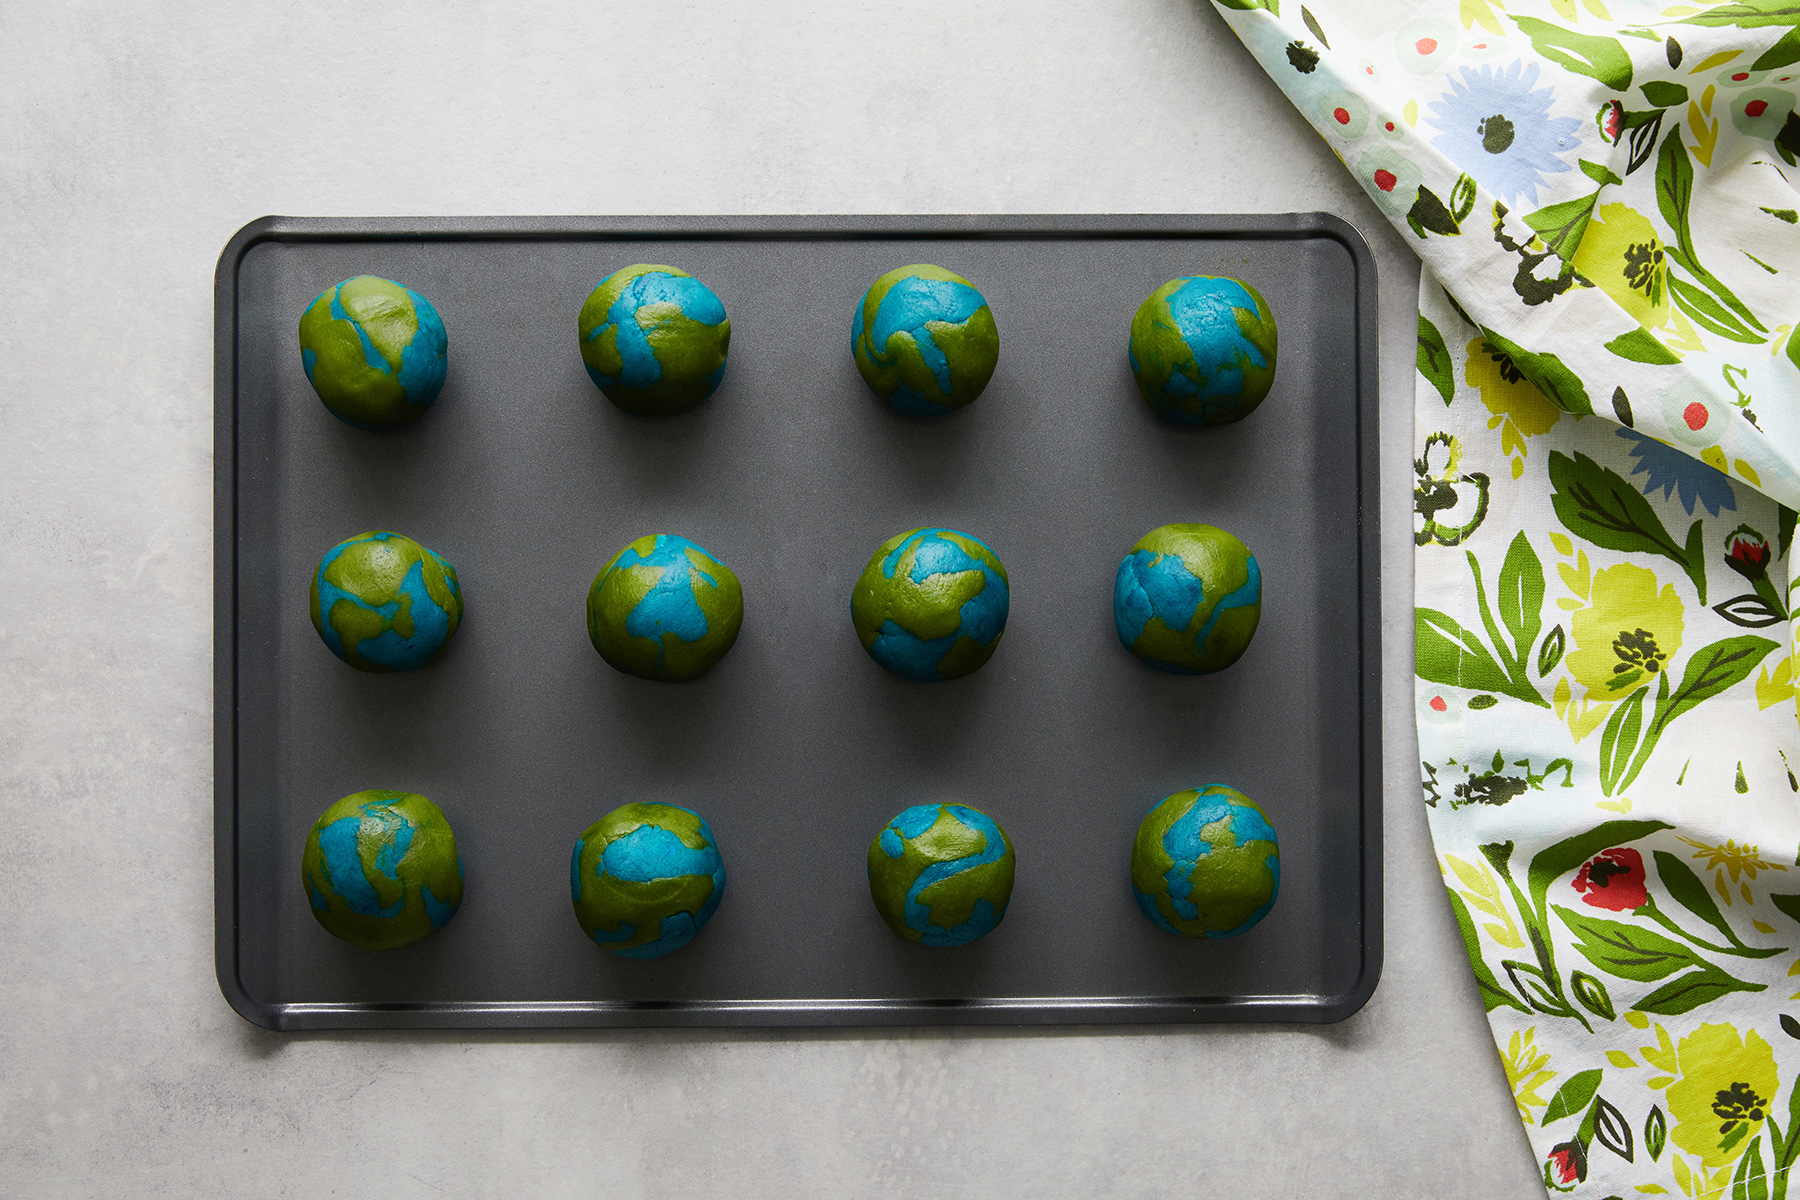 earth day cookies formed into balls on baking sheet